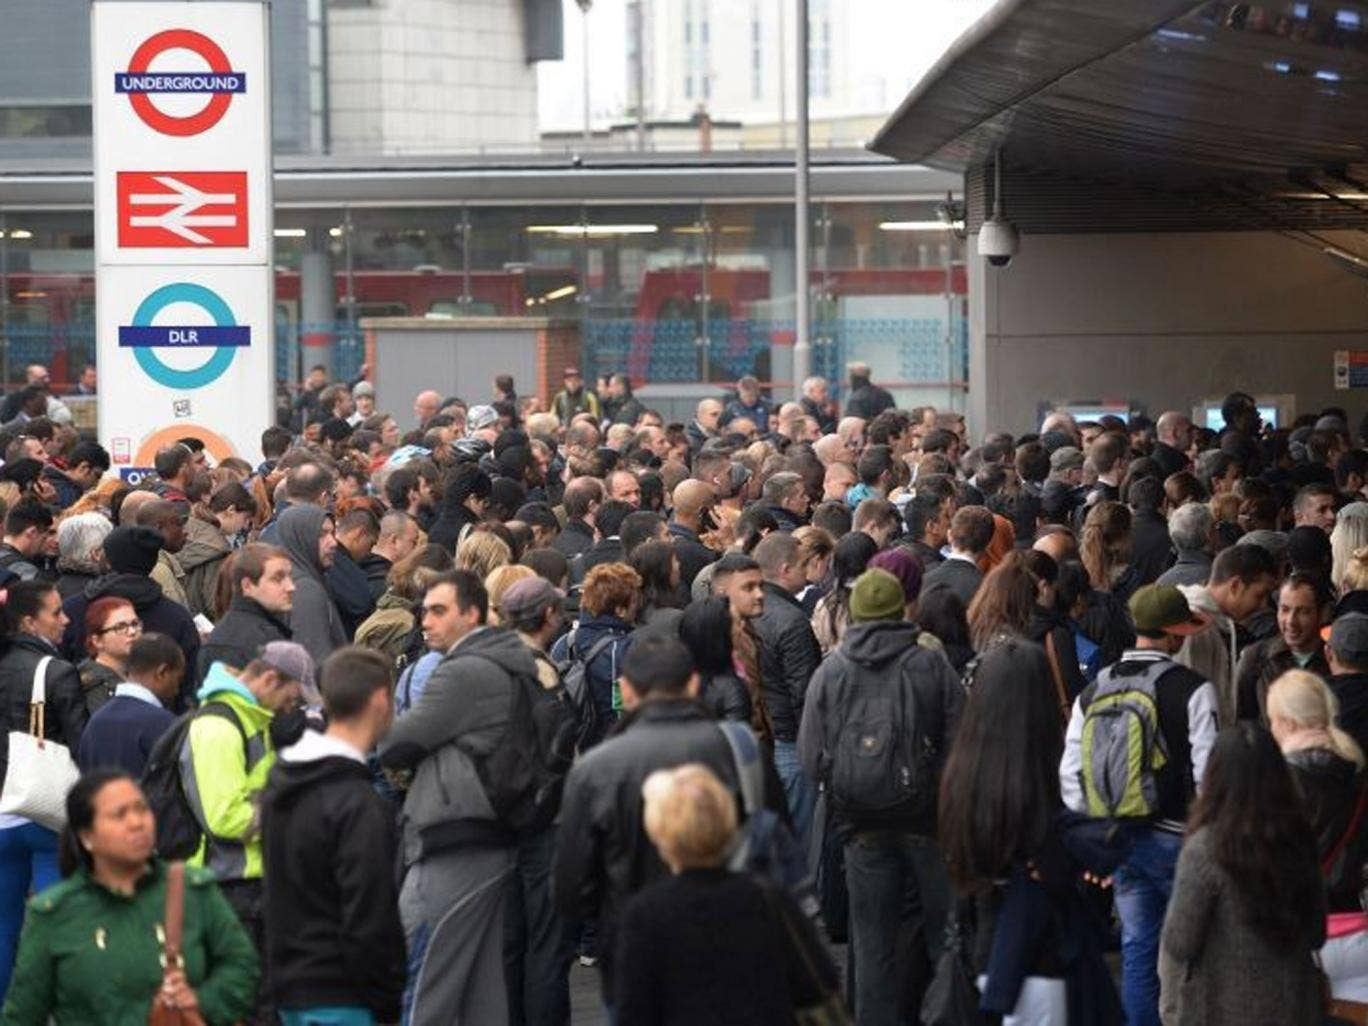 Commuters at Stratford Underground, Overground and DLR Station in east London, on the first day of a 48 hour strike by tube workers on the London Underground over ticket office closures.